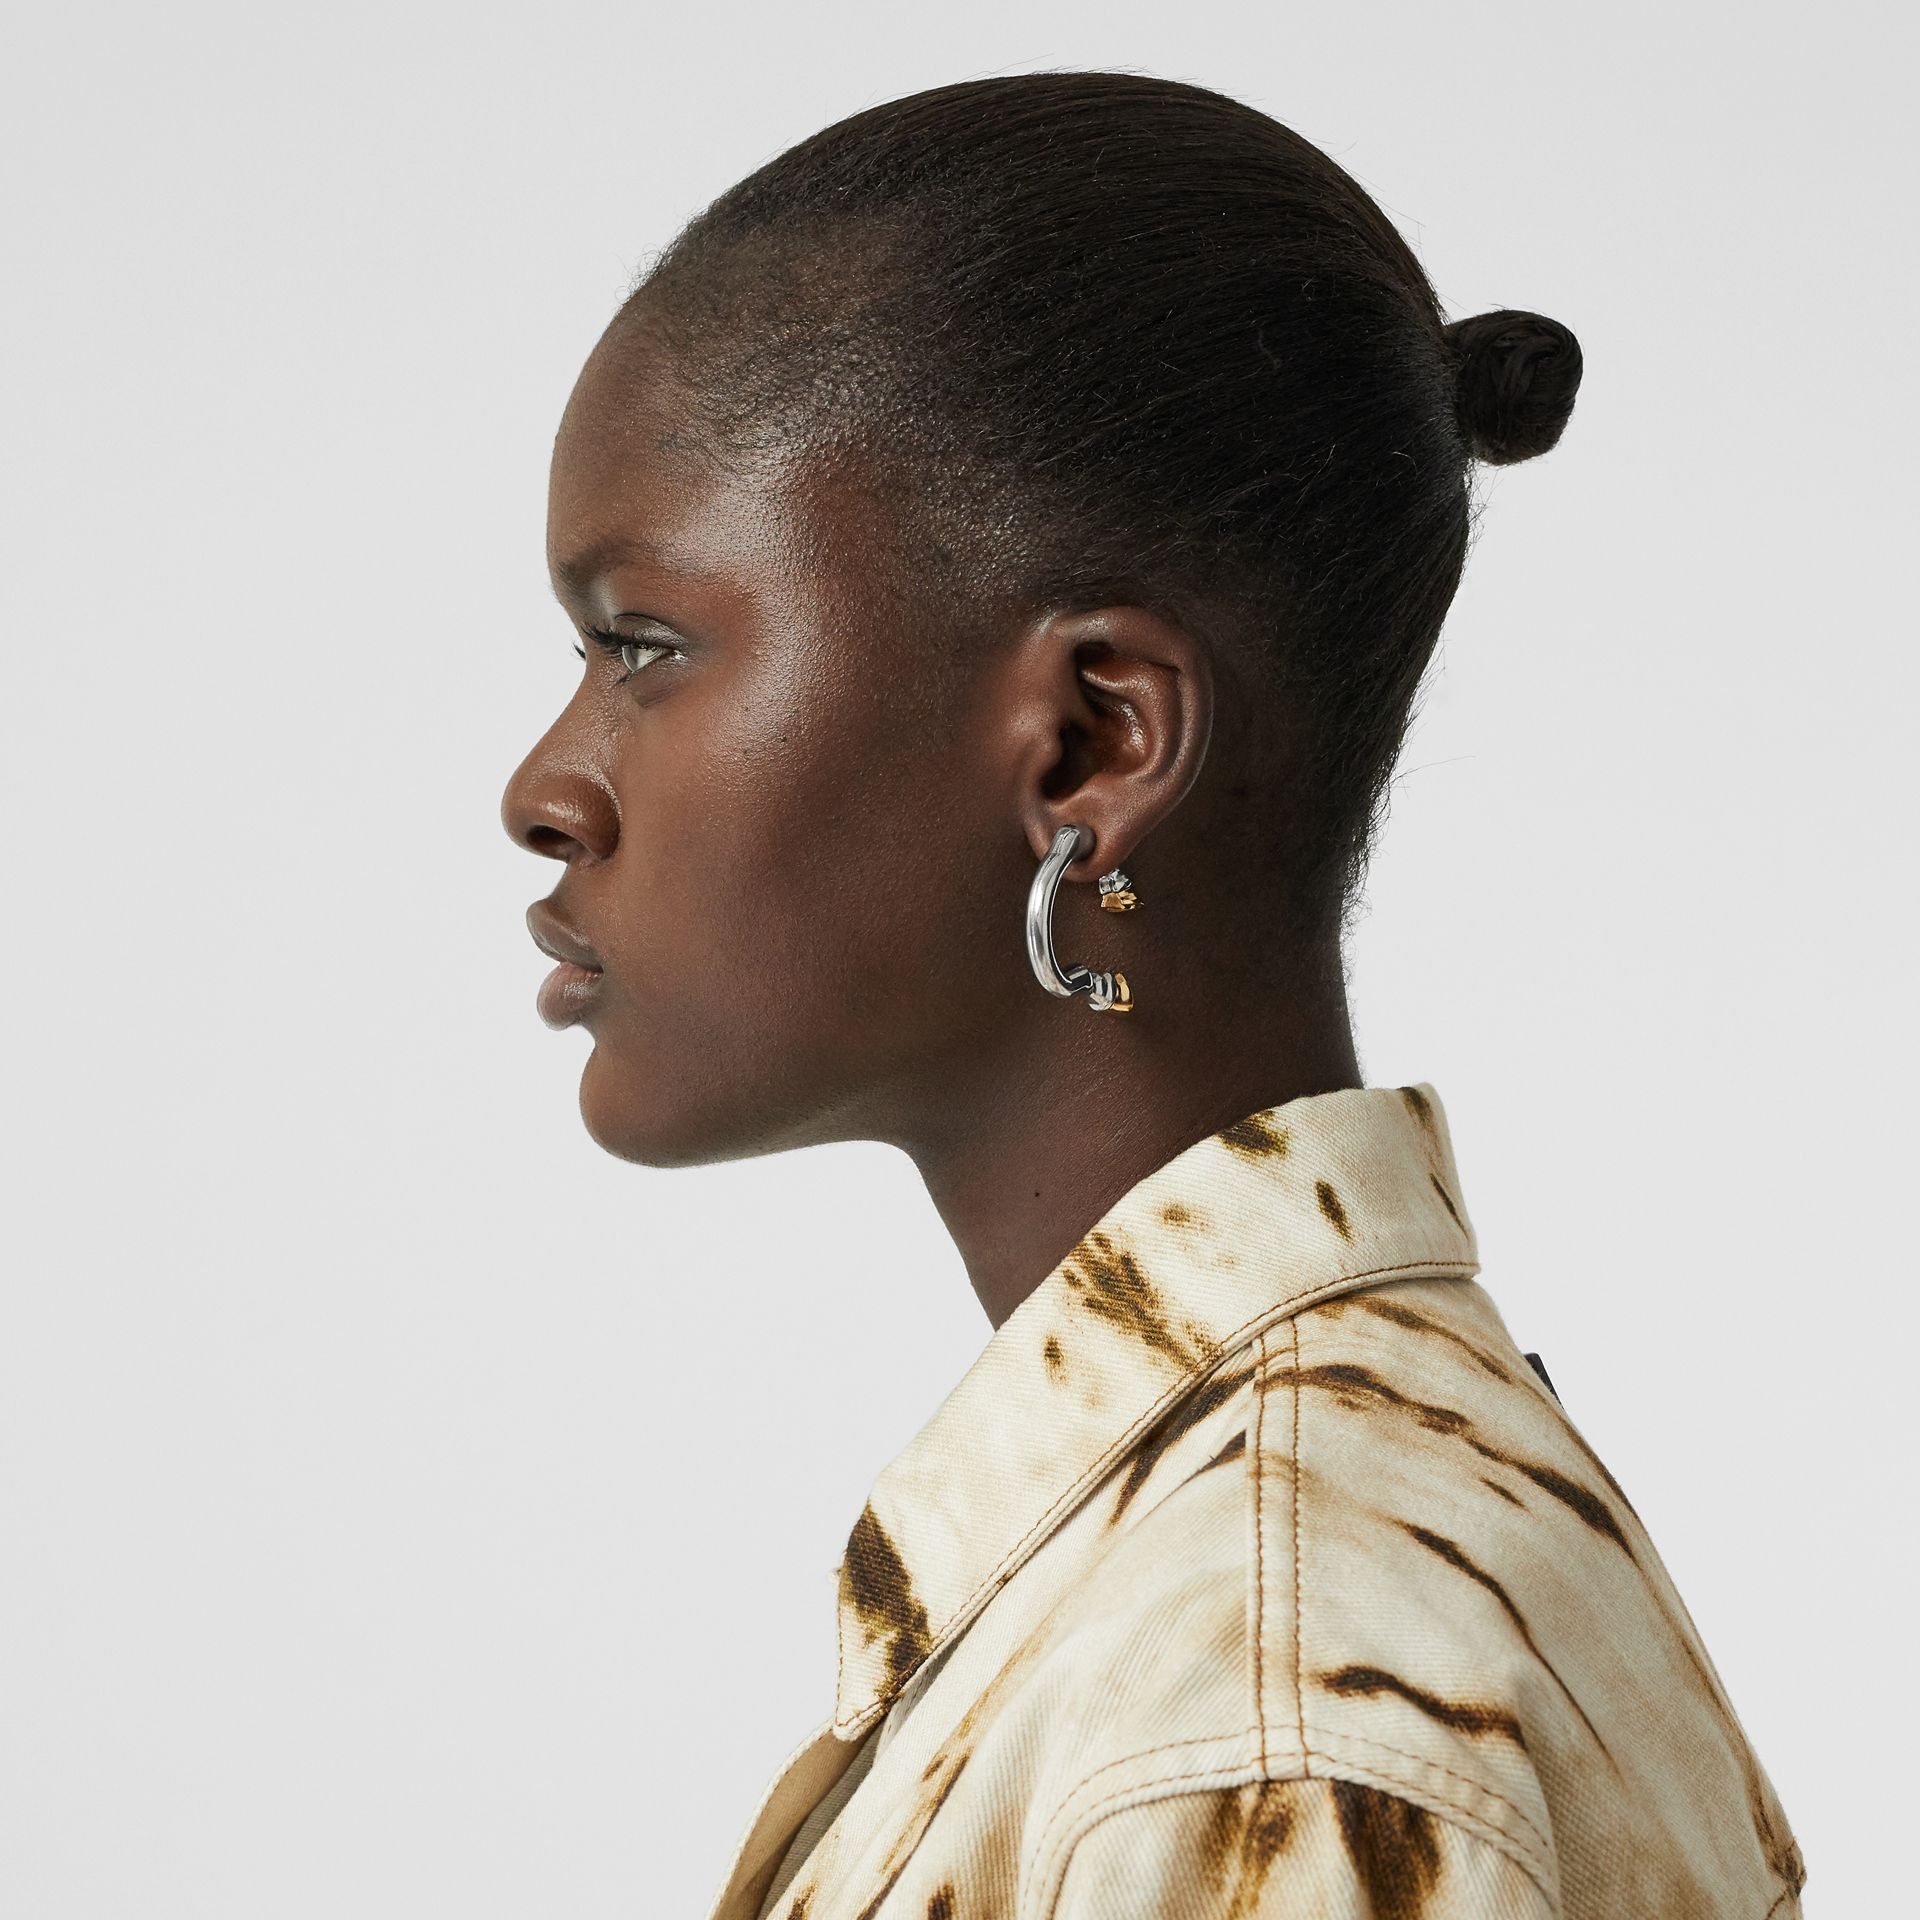 Palladium and Gold-plated Hoof Open-hoop Earrings in Palladio/gold - Women | Burberry Singapore - gallery image 2